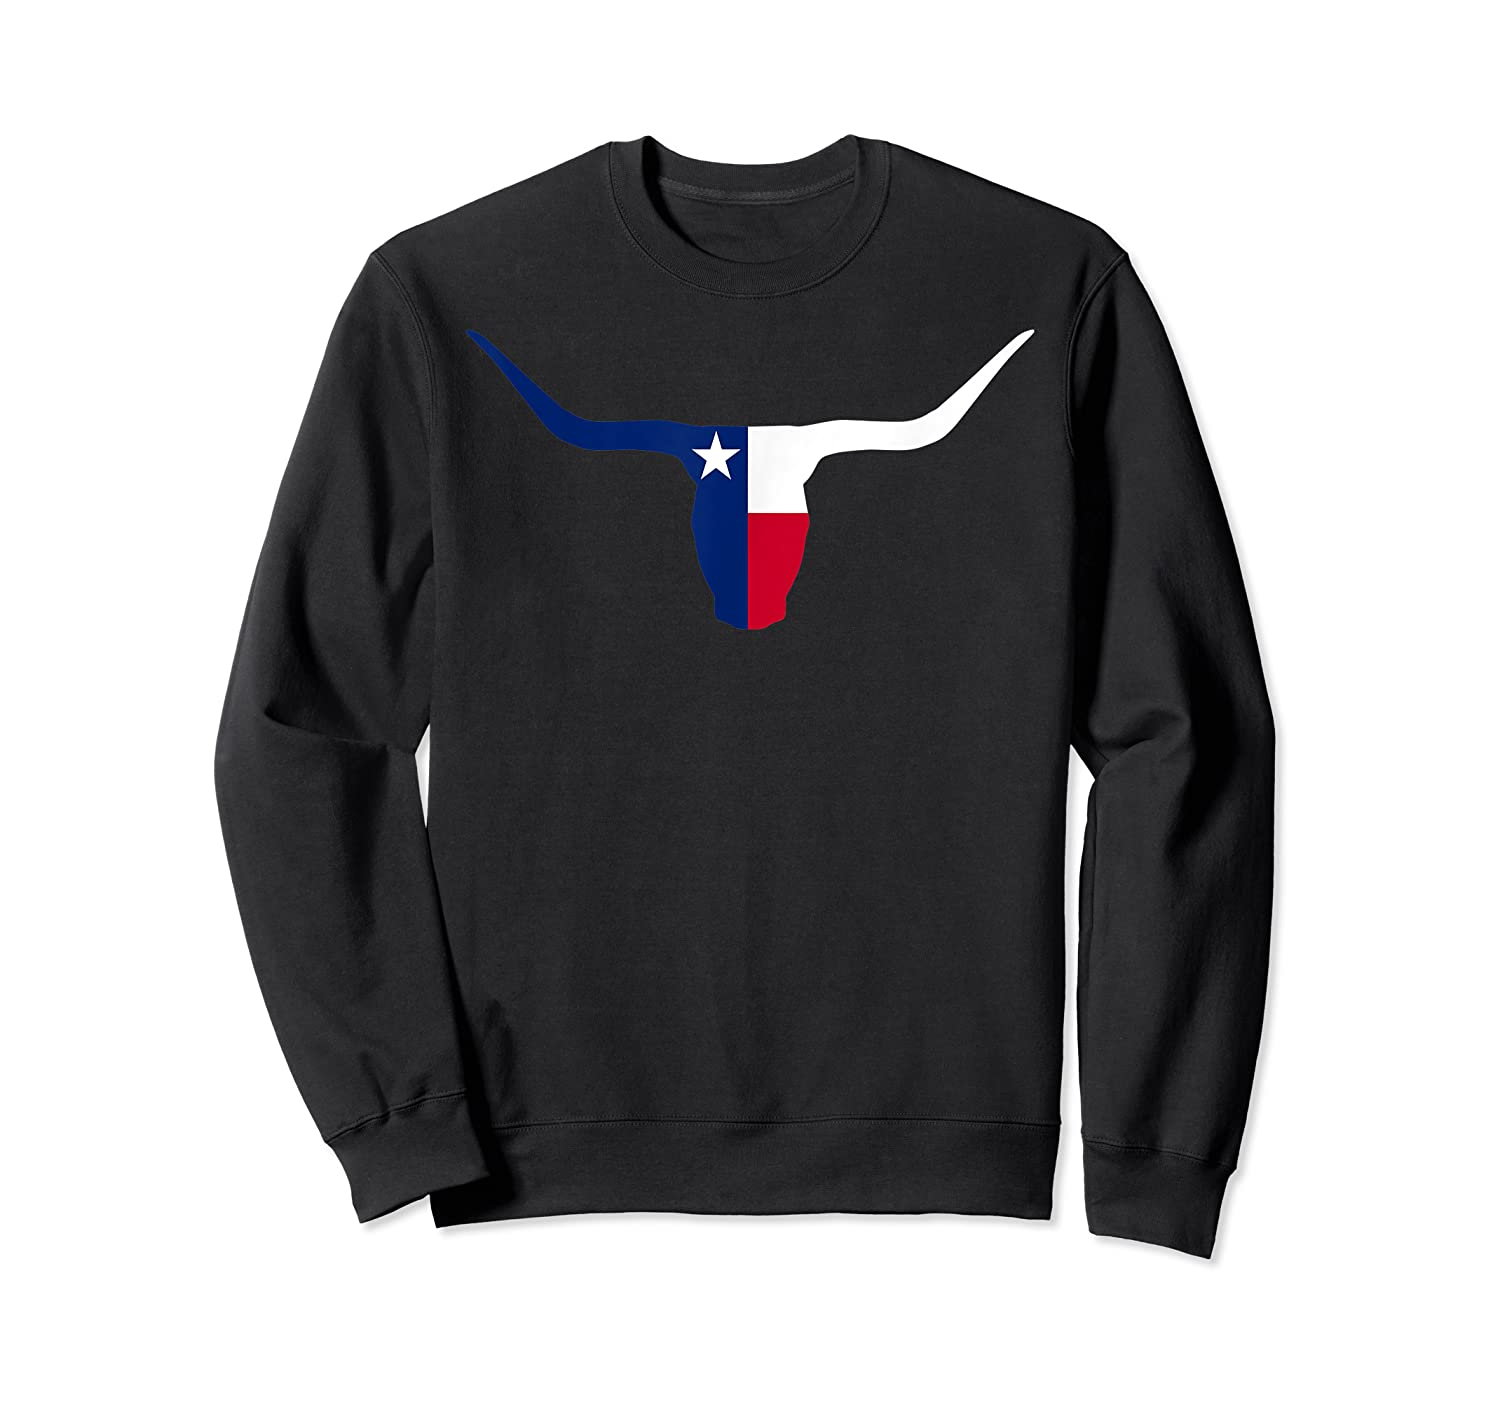 Cool Longhorn Bull Texas Flag Home State Shirts Crewneck Sweater